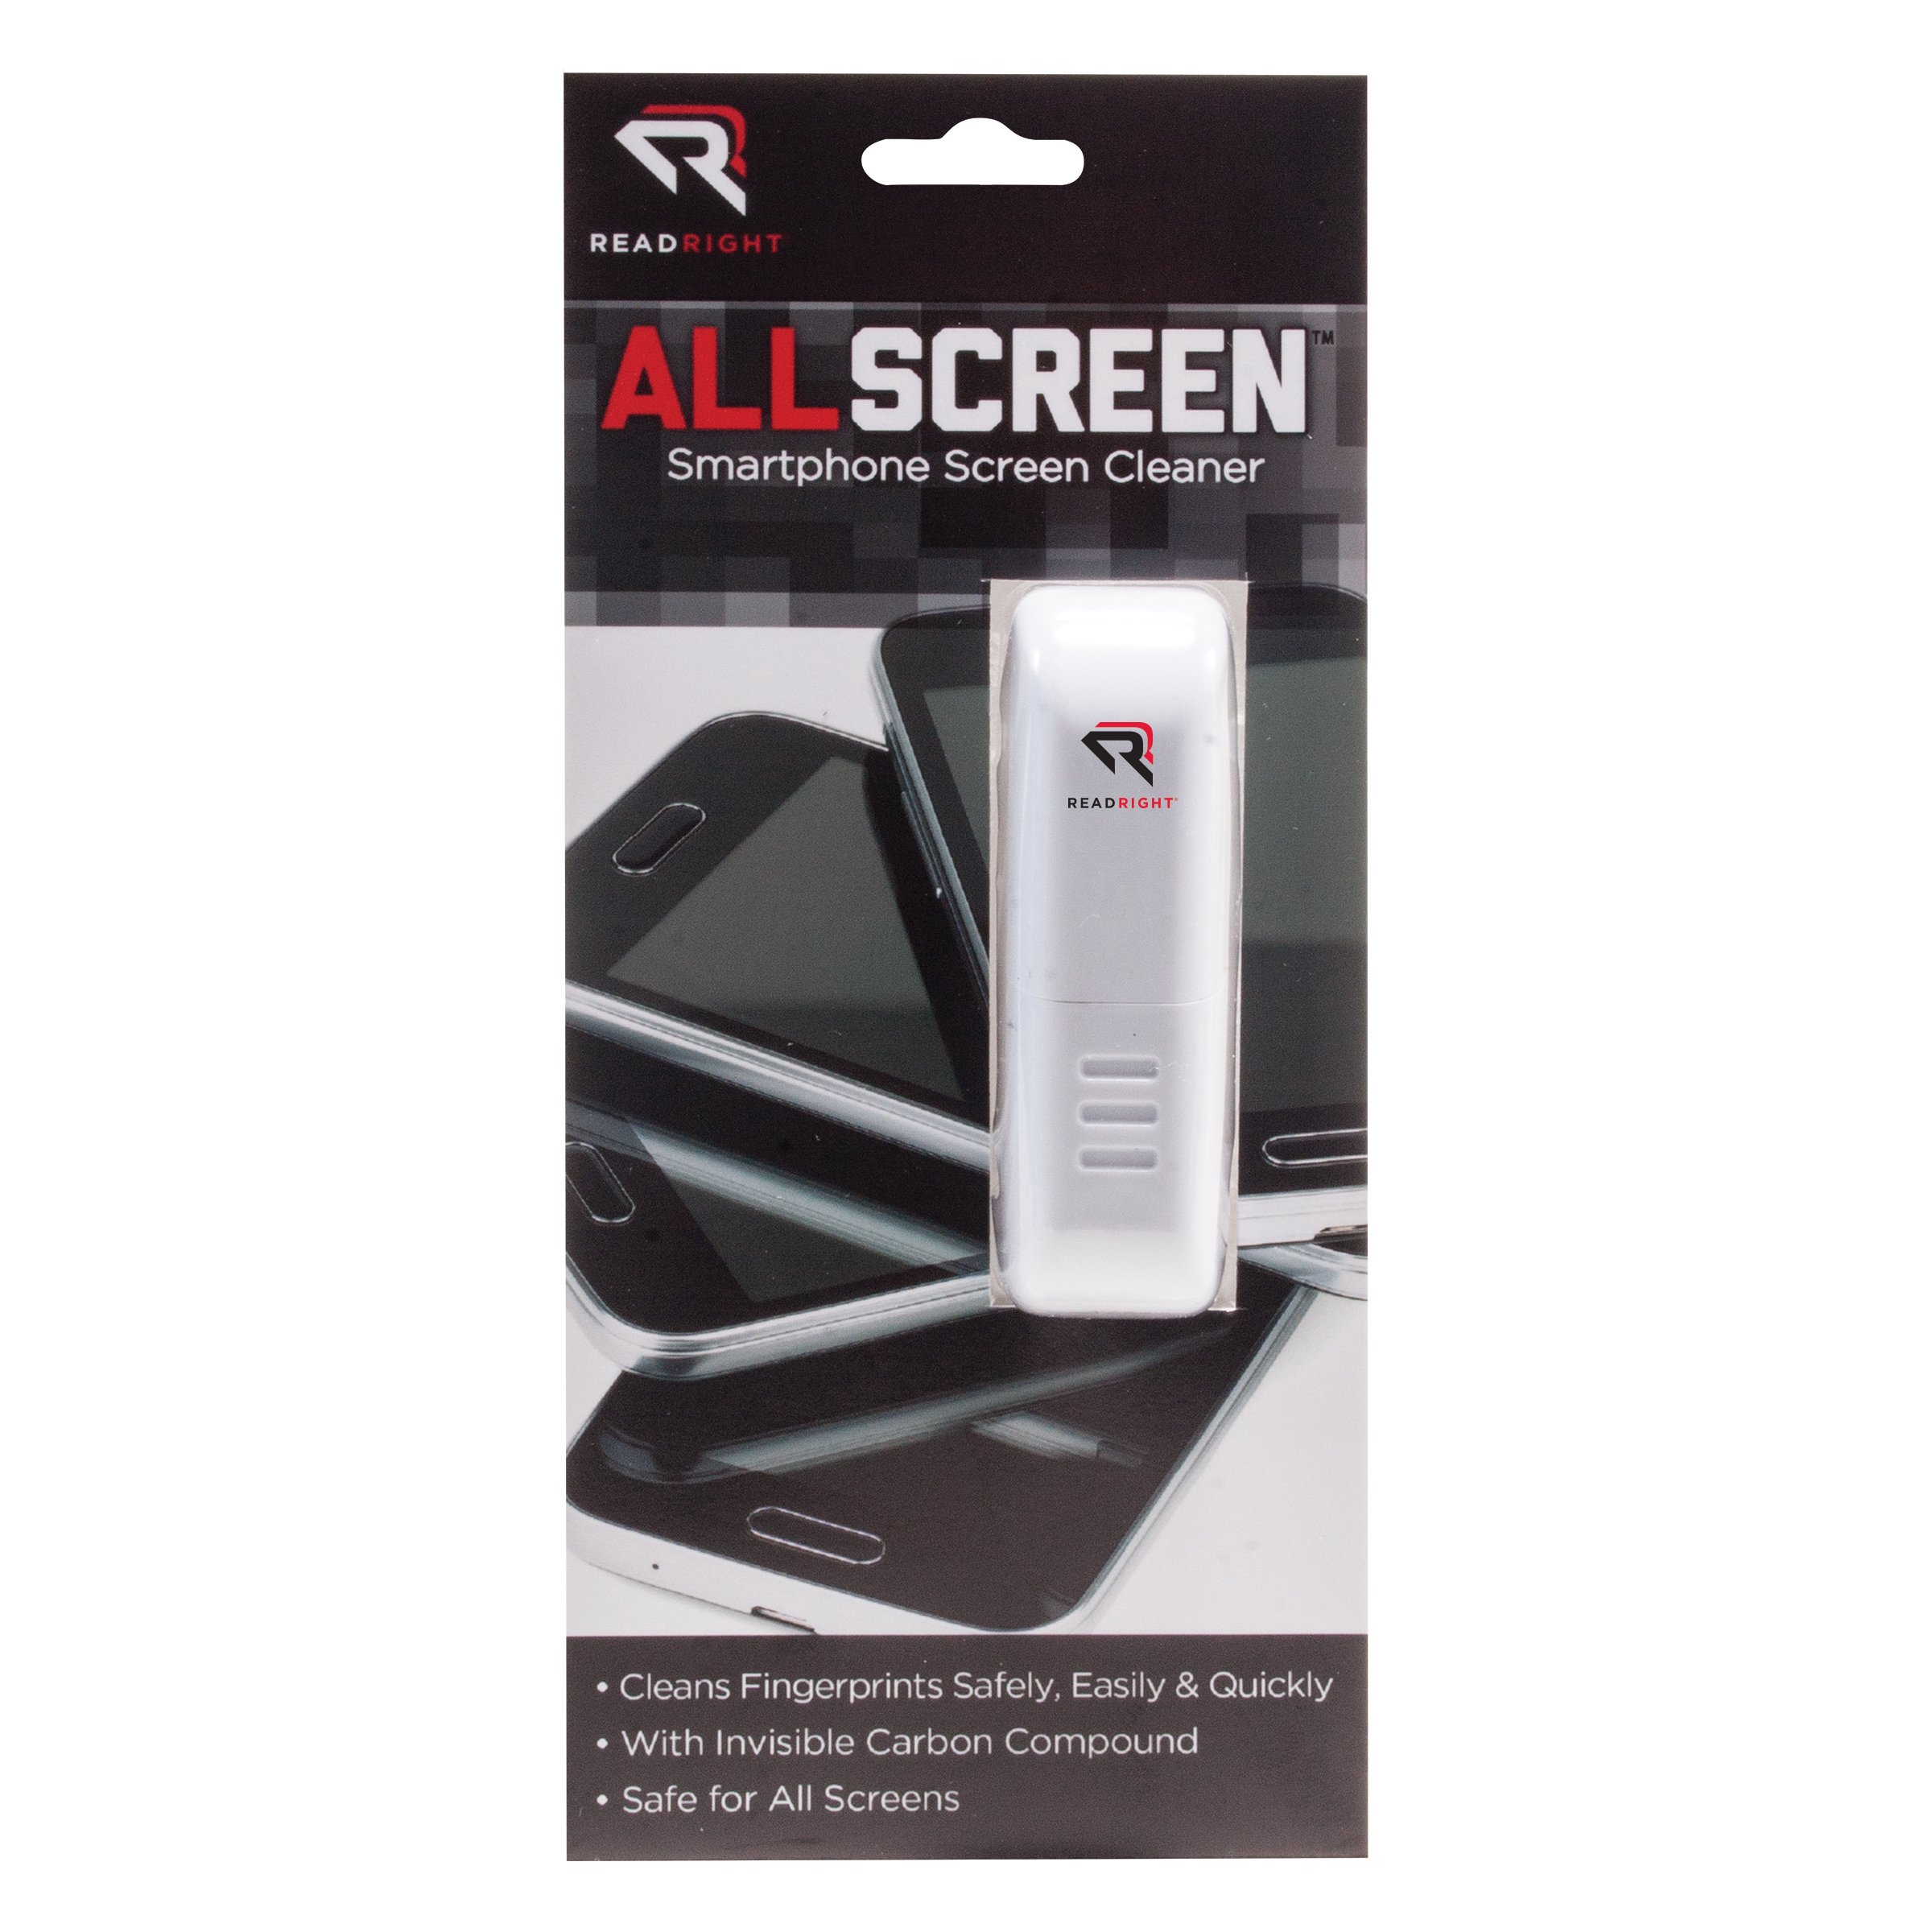 Read Right AllScreen Smartphone Screen Cleaner, 1 Each (RR15030)